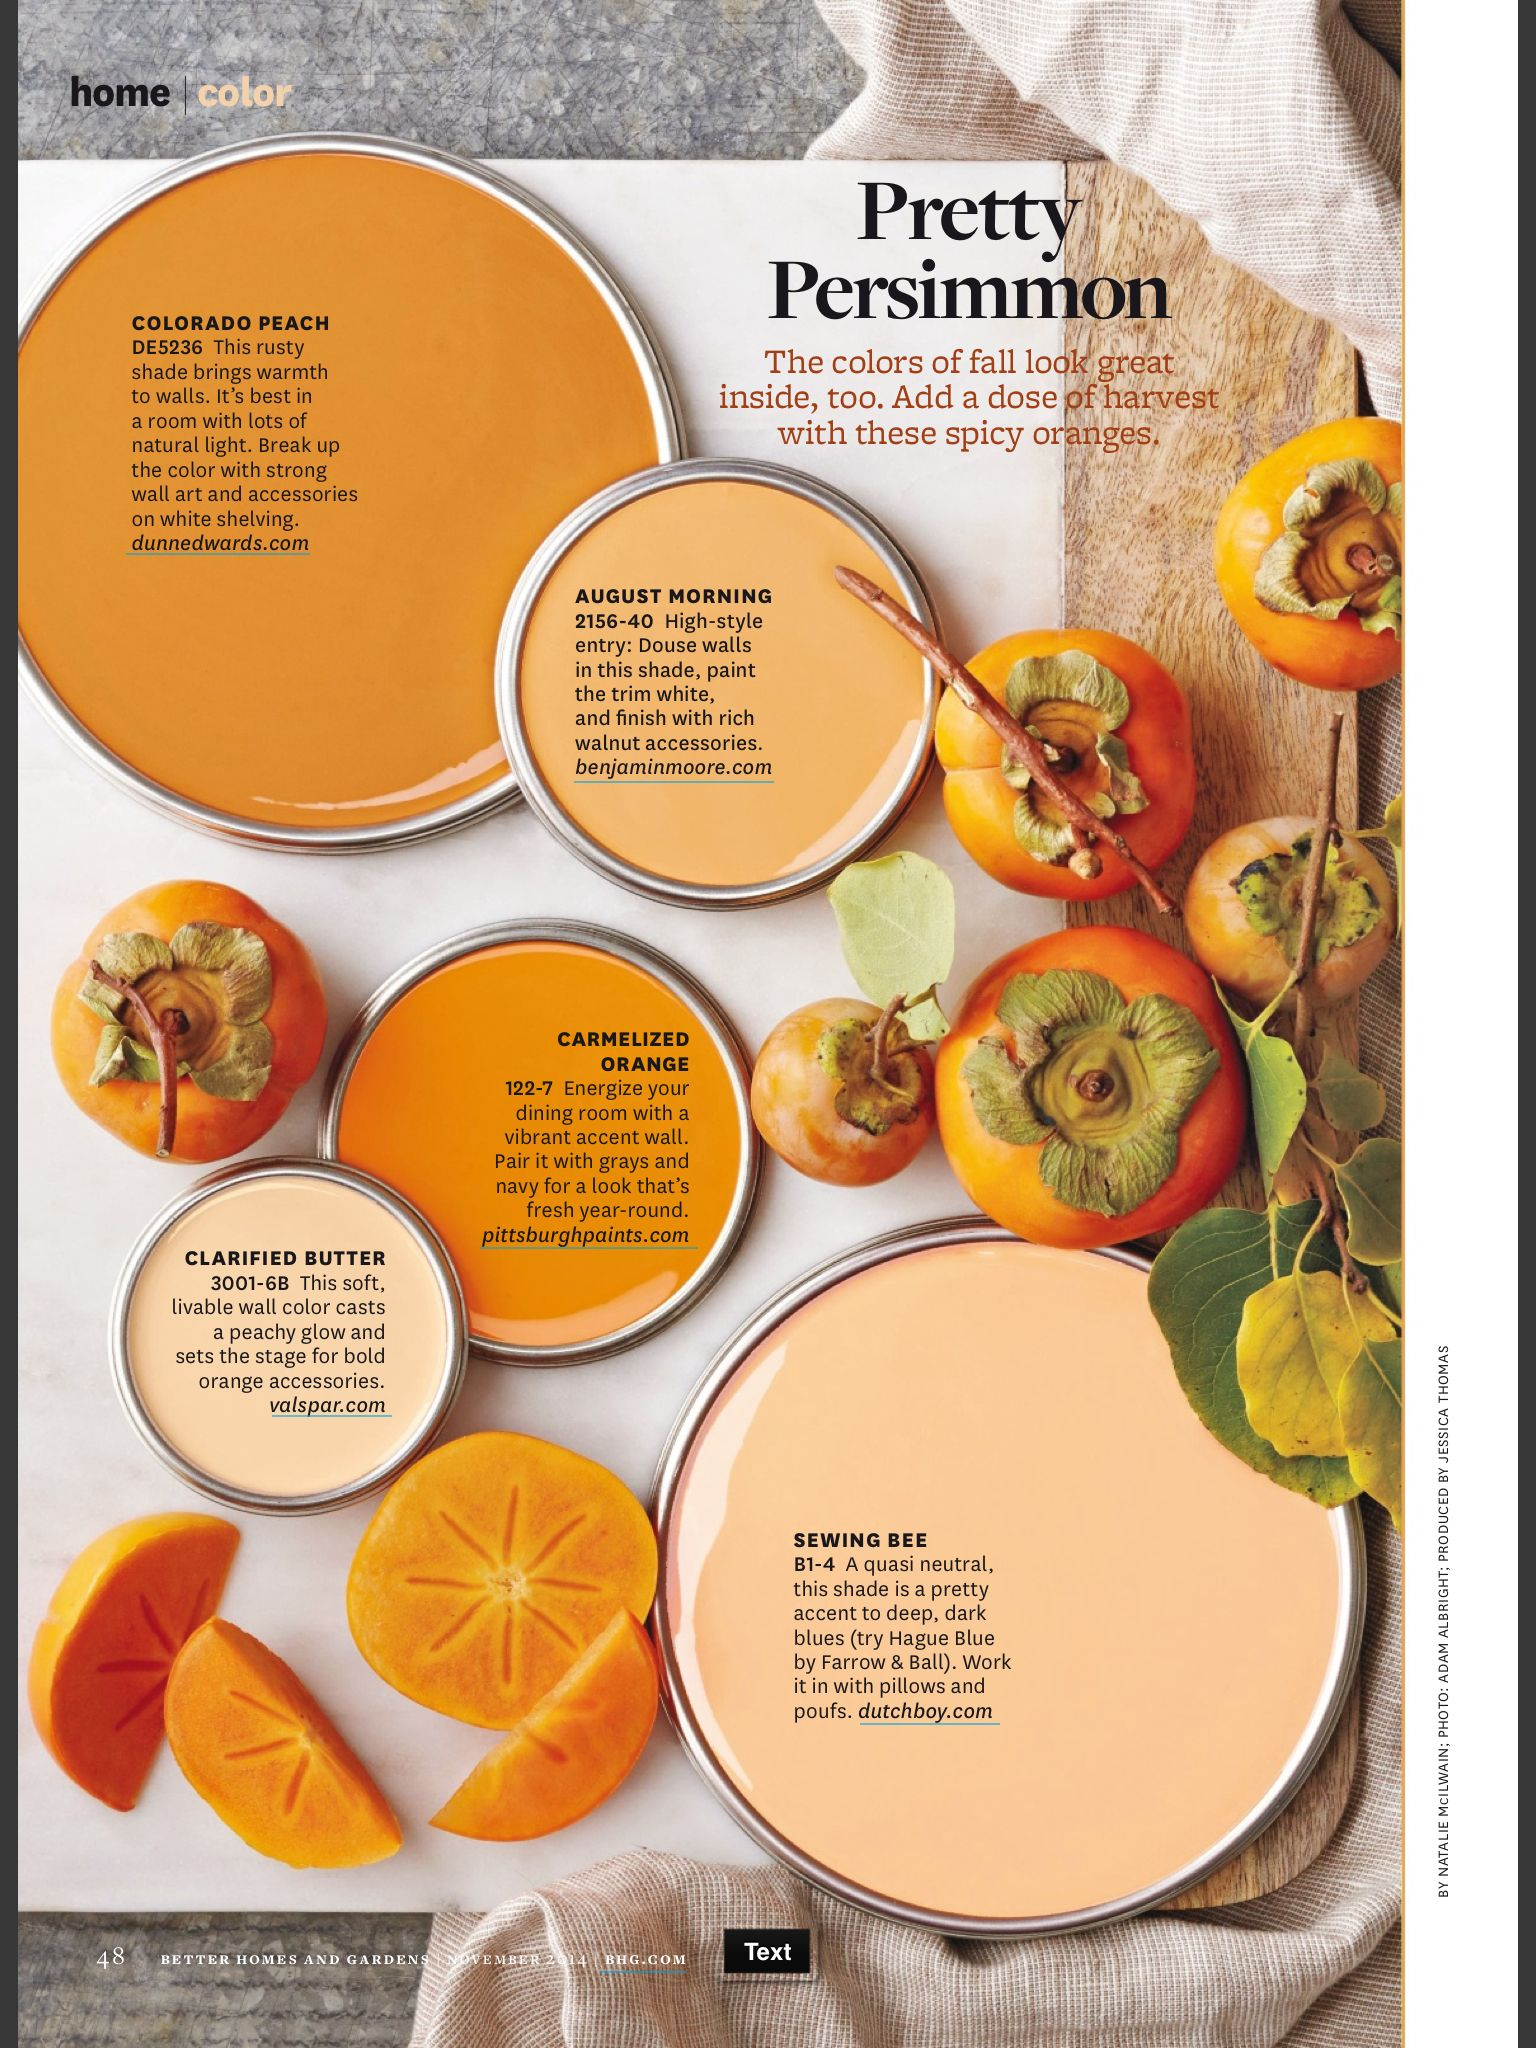 Better Homes and Gardens Pretty Persimmon  Paint Samples